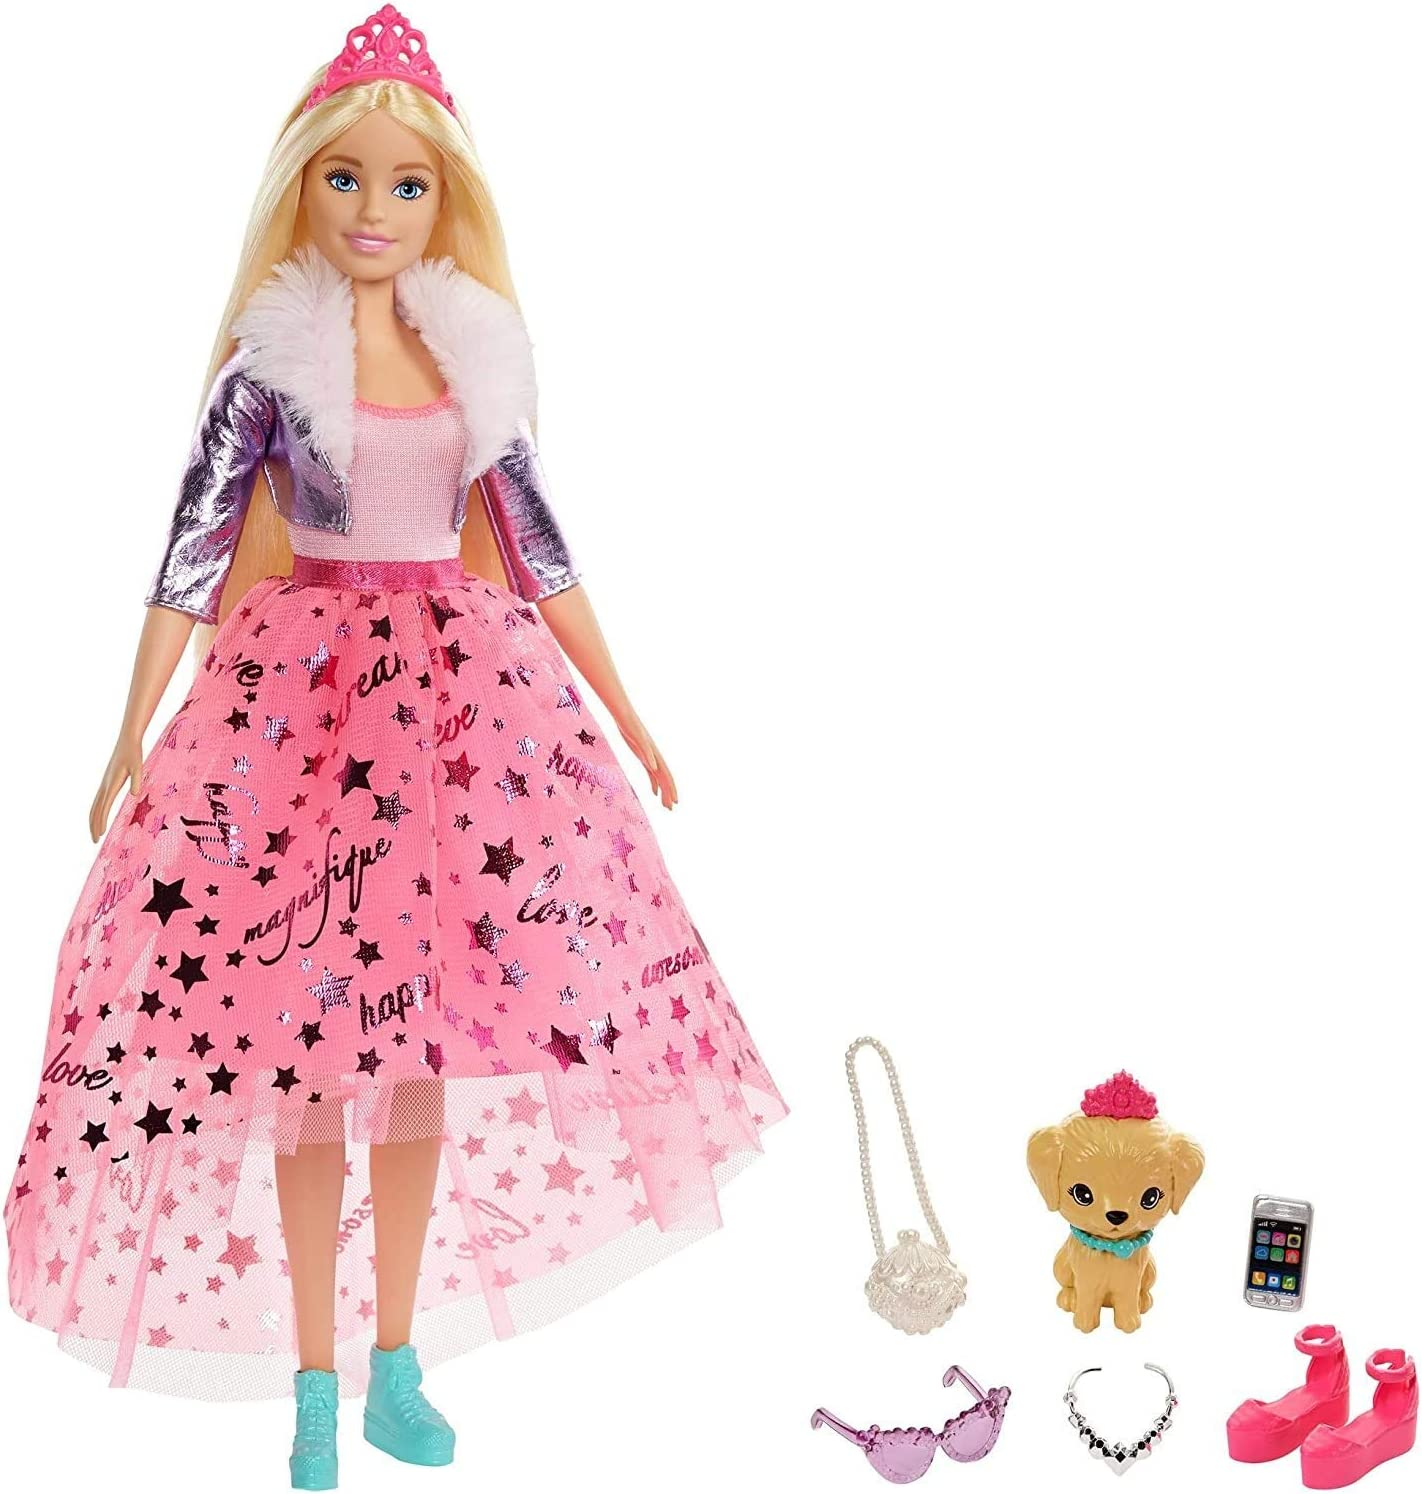 Barbie Princesse Adventure en promotion